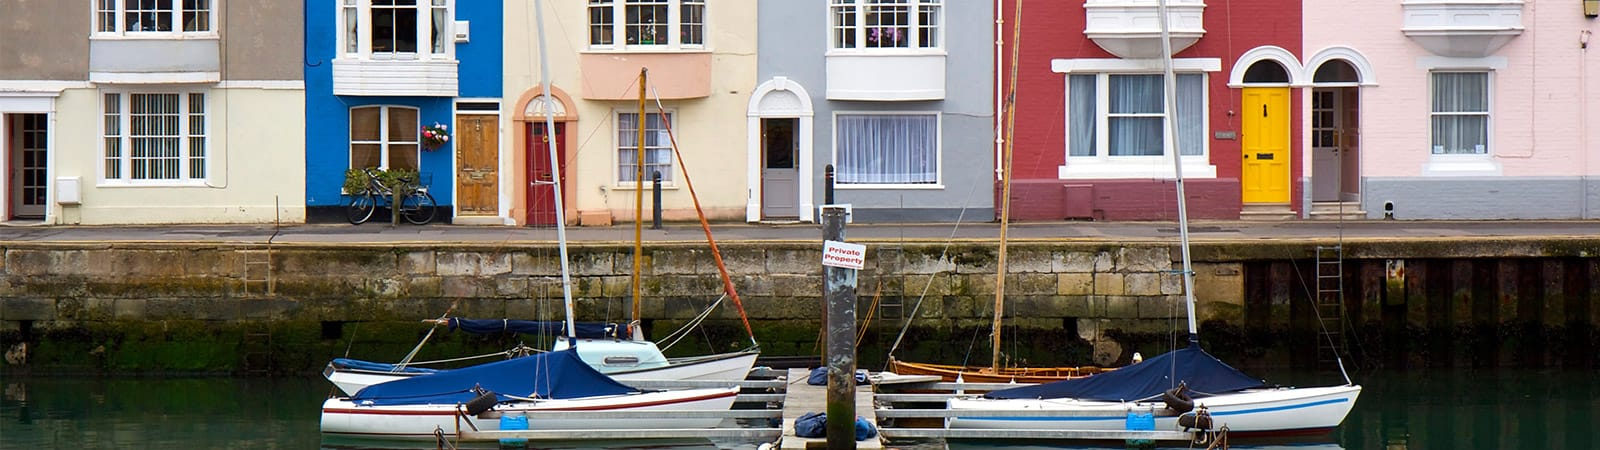 Picture of Weymouth Harbour & boats